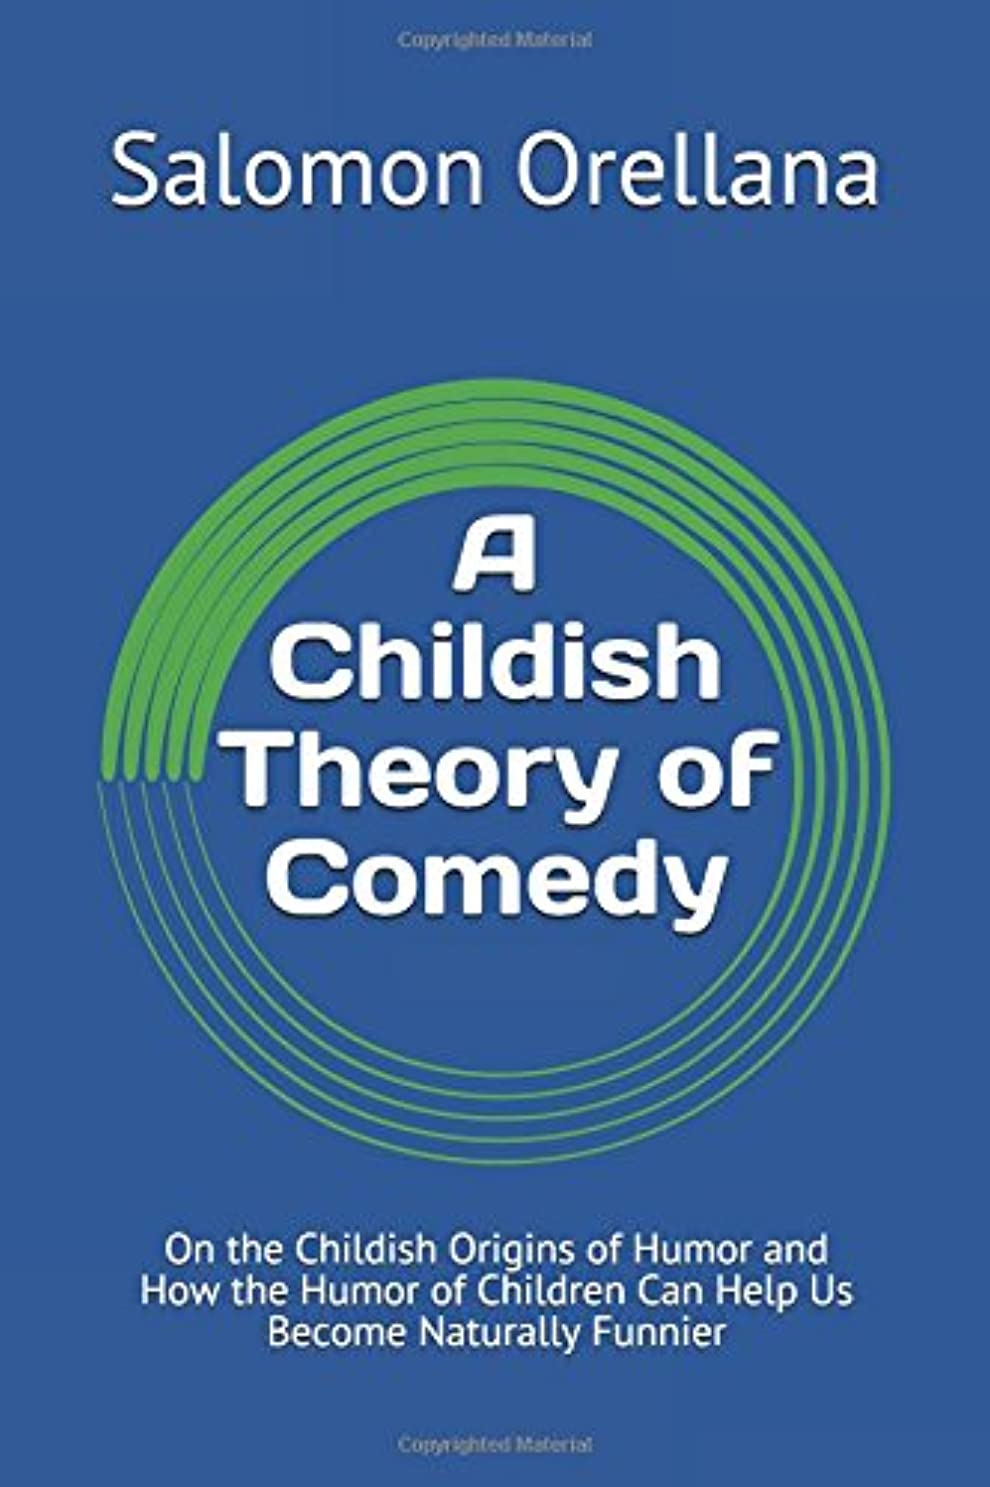 有害噴出するトランペットA Childish Theory of Comedy: On the Childish Origins of Humor and How the Humor of Children Can Help Us Become Naturally Funnier